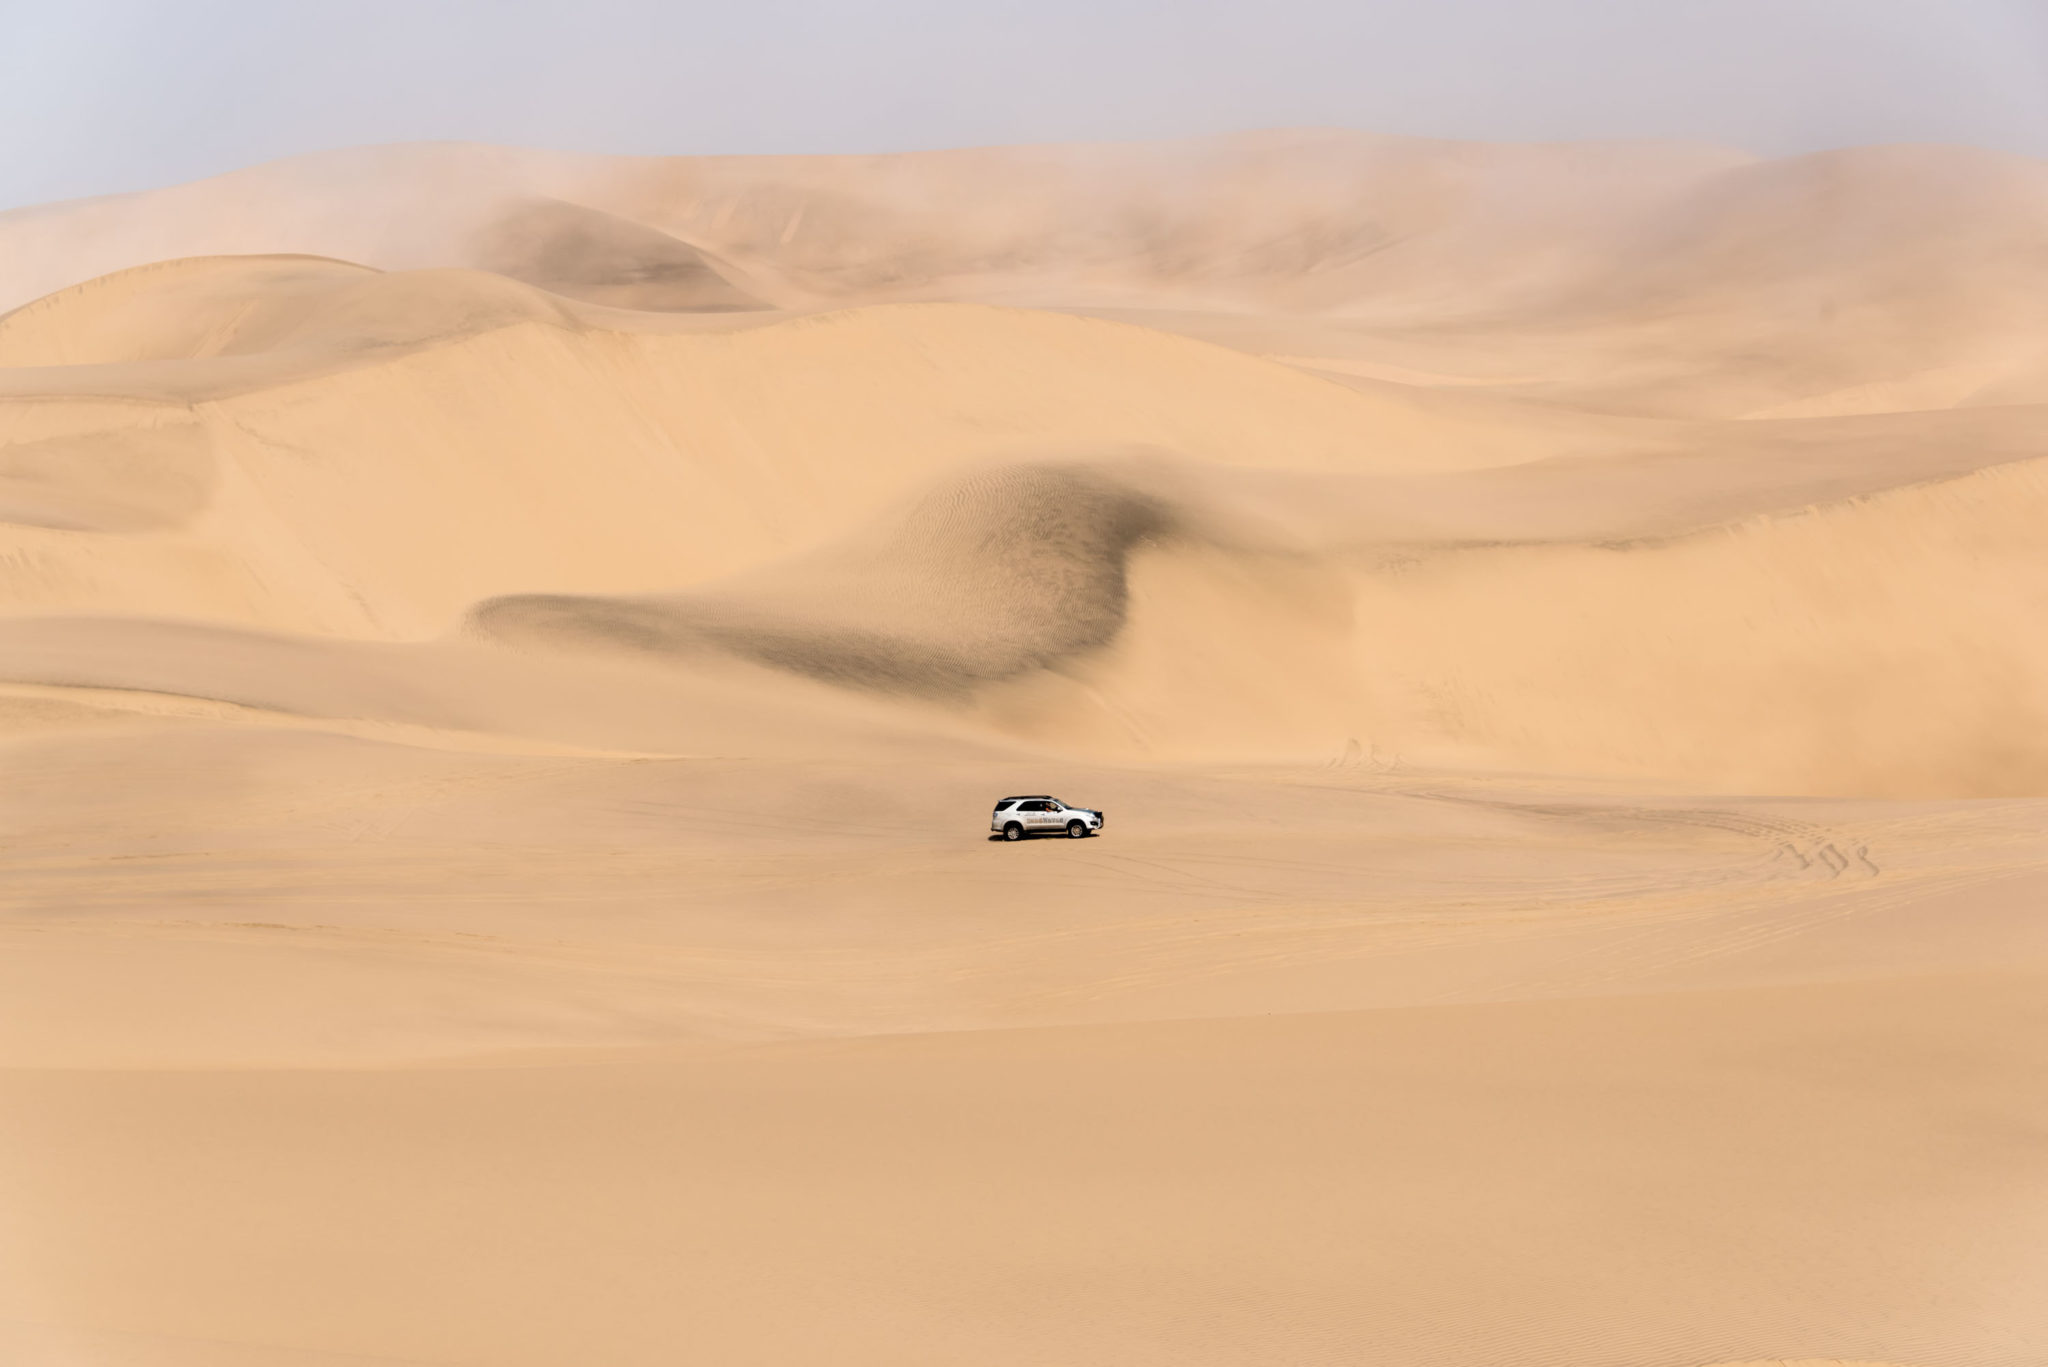 Sand dunes in stunning Namibia (Photo by Adrianne Brockman)